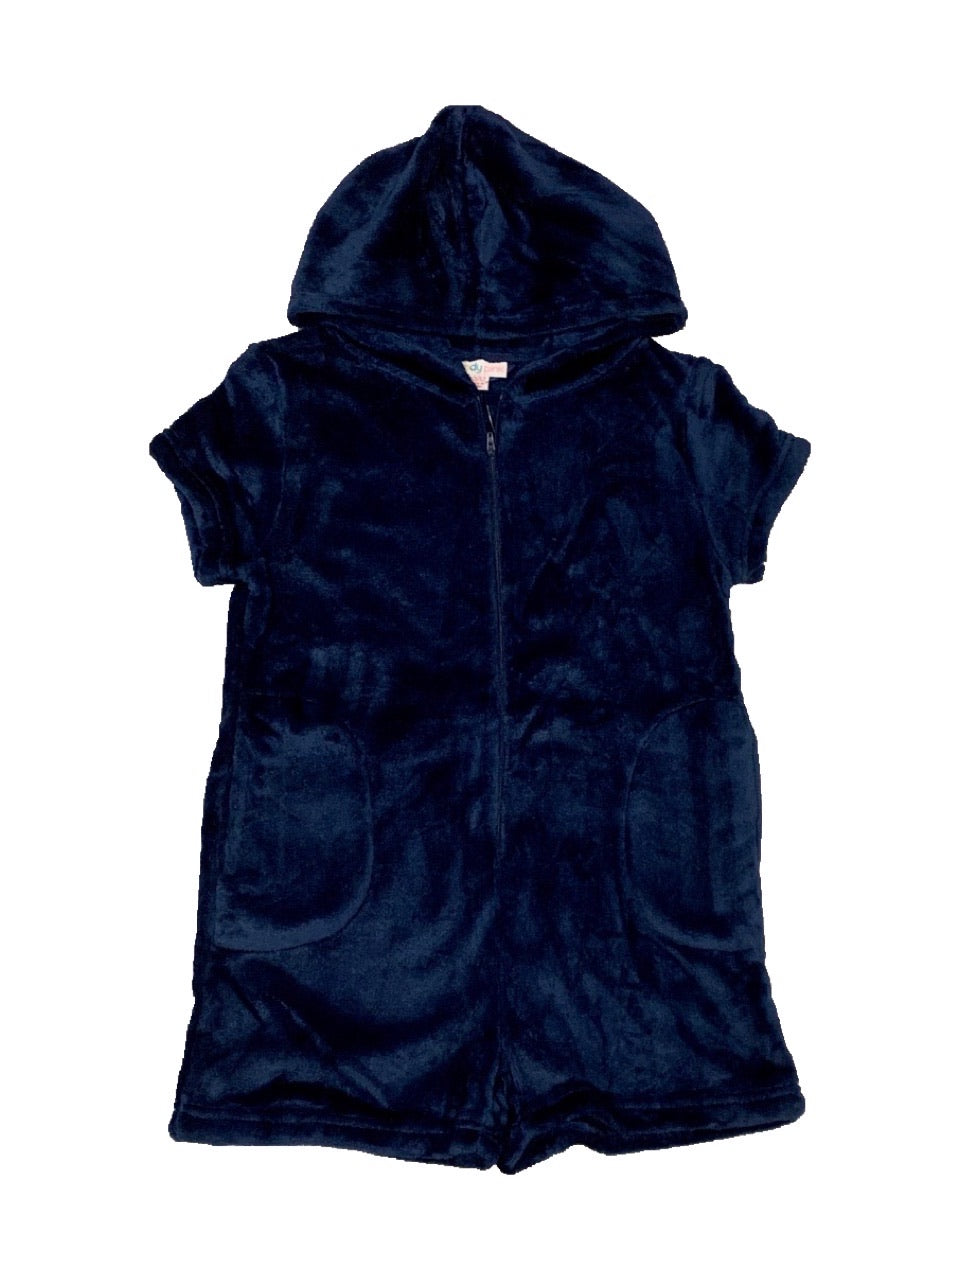 CANDY PINK FLEECE ROMPER - NAVY